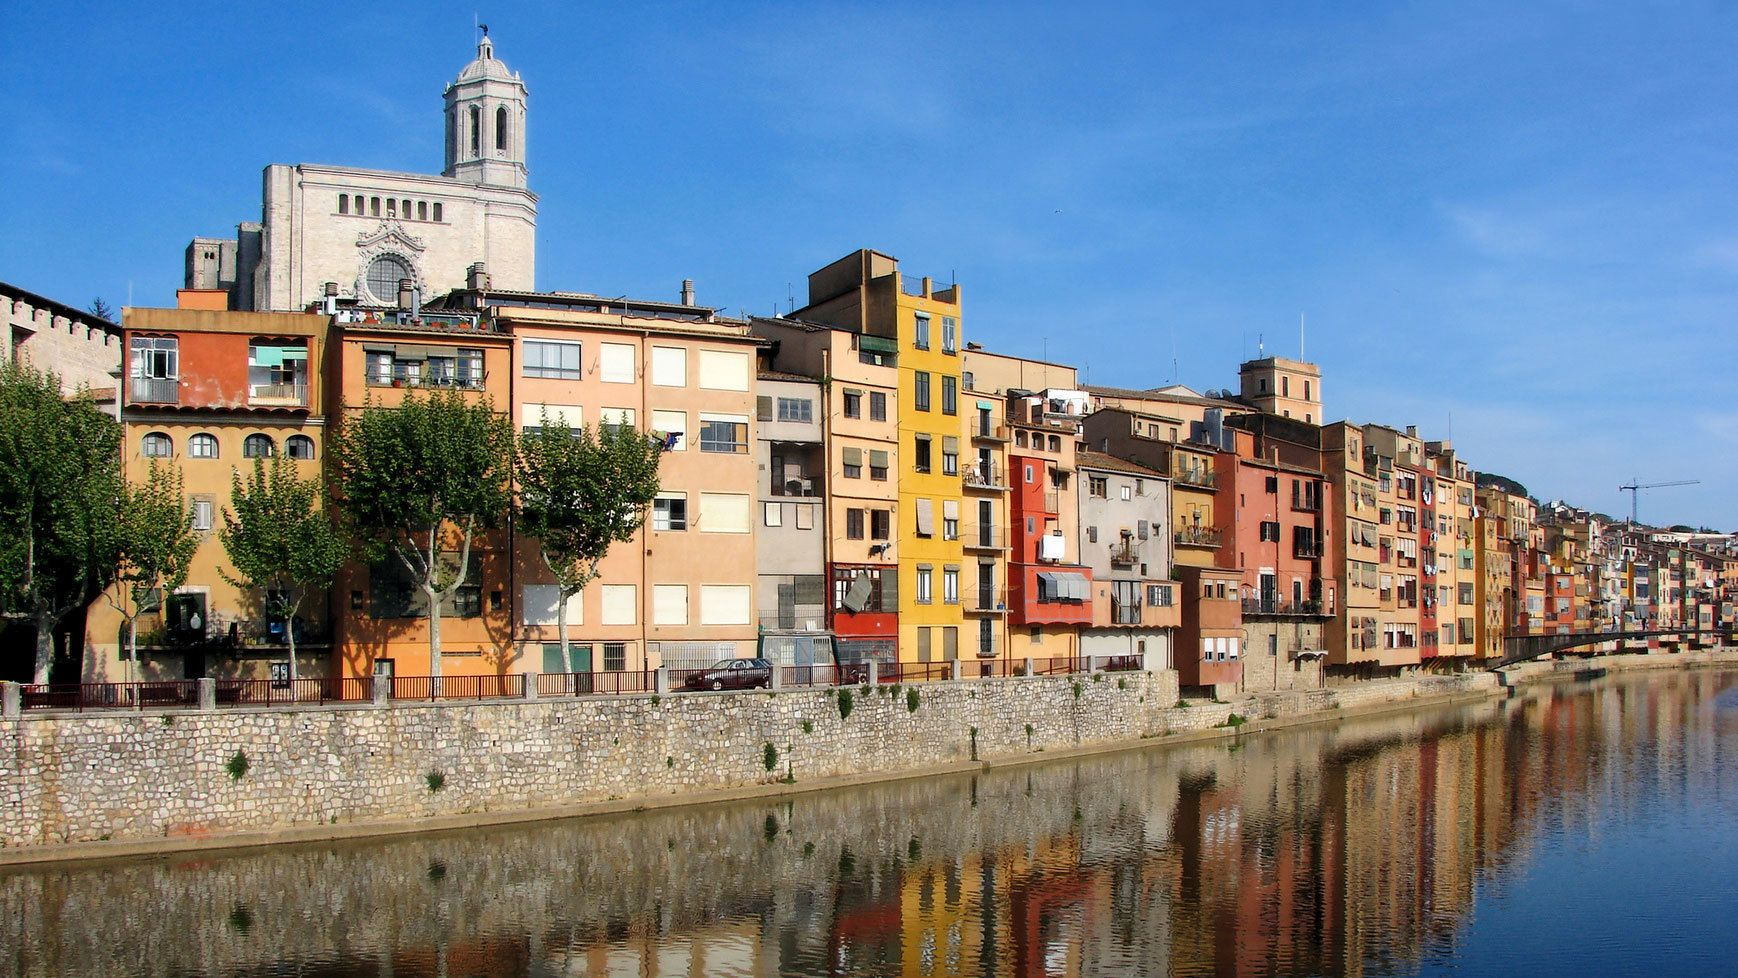 vibrant colored buildings along the water channel in Barcelona